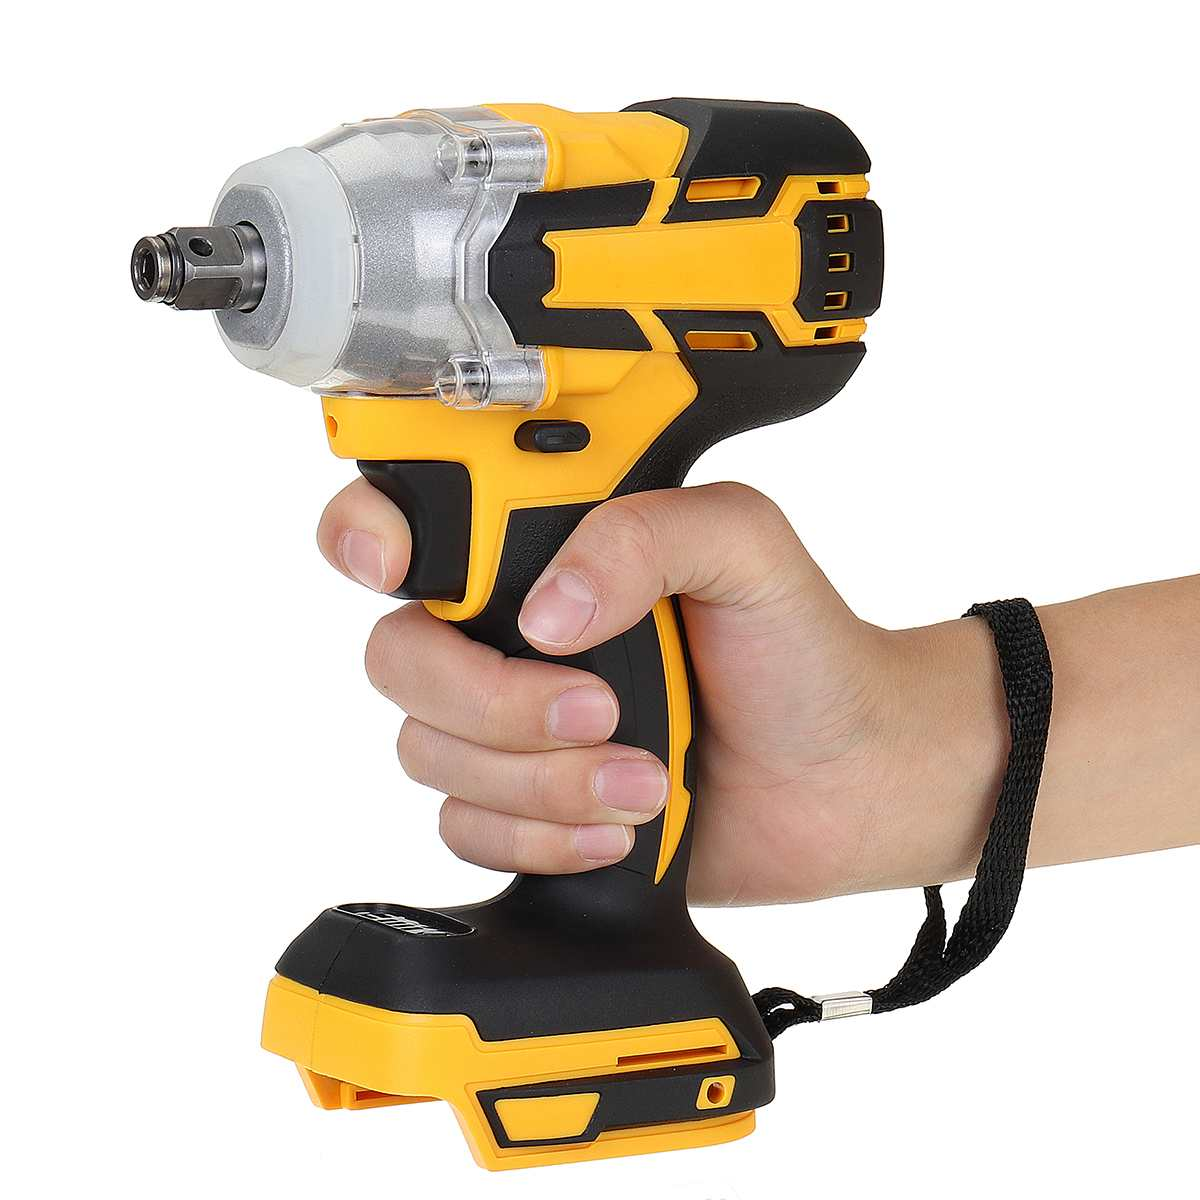 18V 520N.m Electric Brushless Impact Wrench Rechargeable 1/2'' Socket Wrench Power Tool Cordless Without Battery Accessories